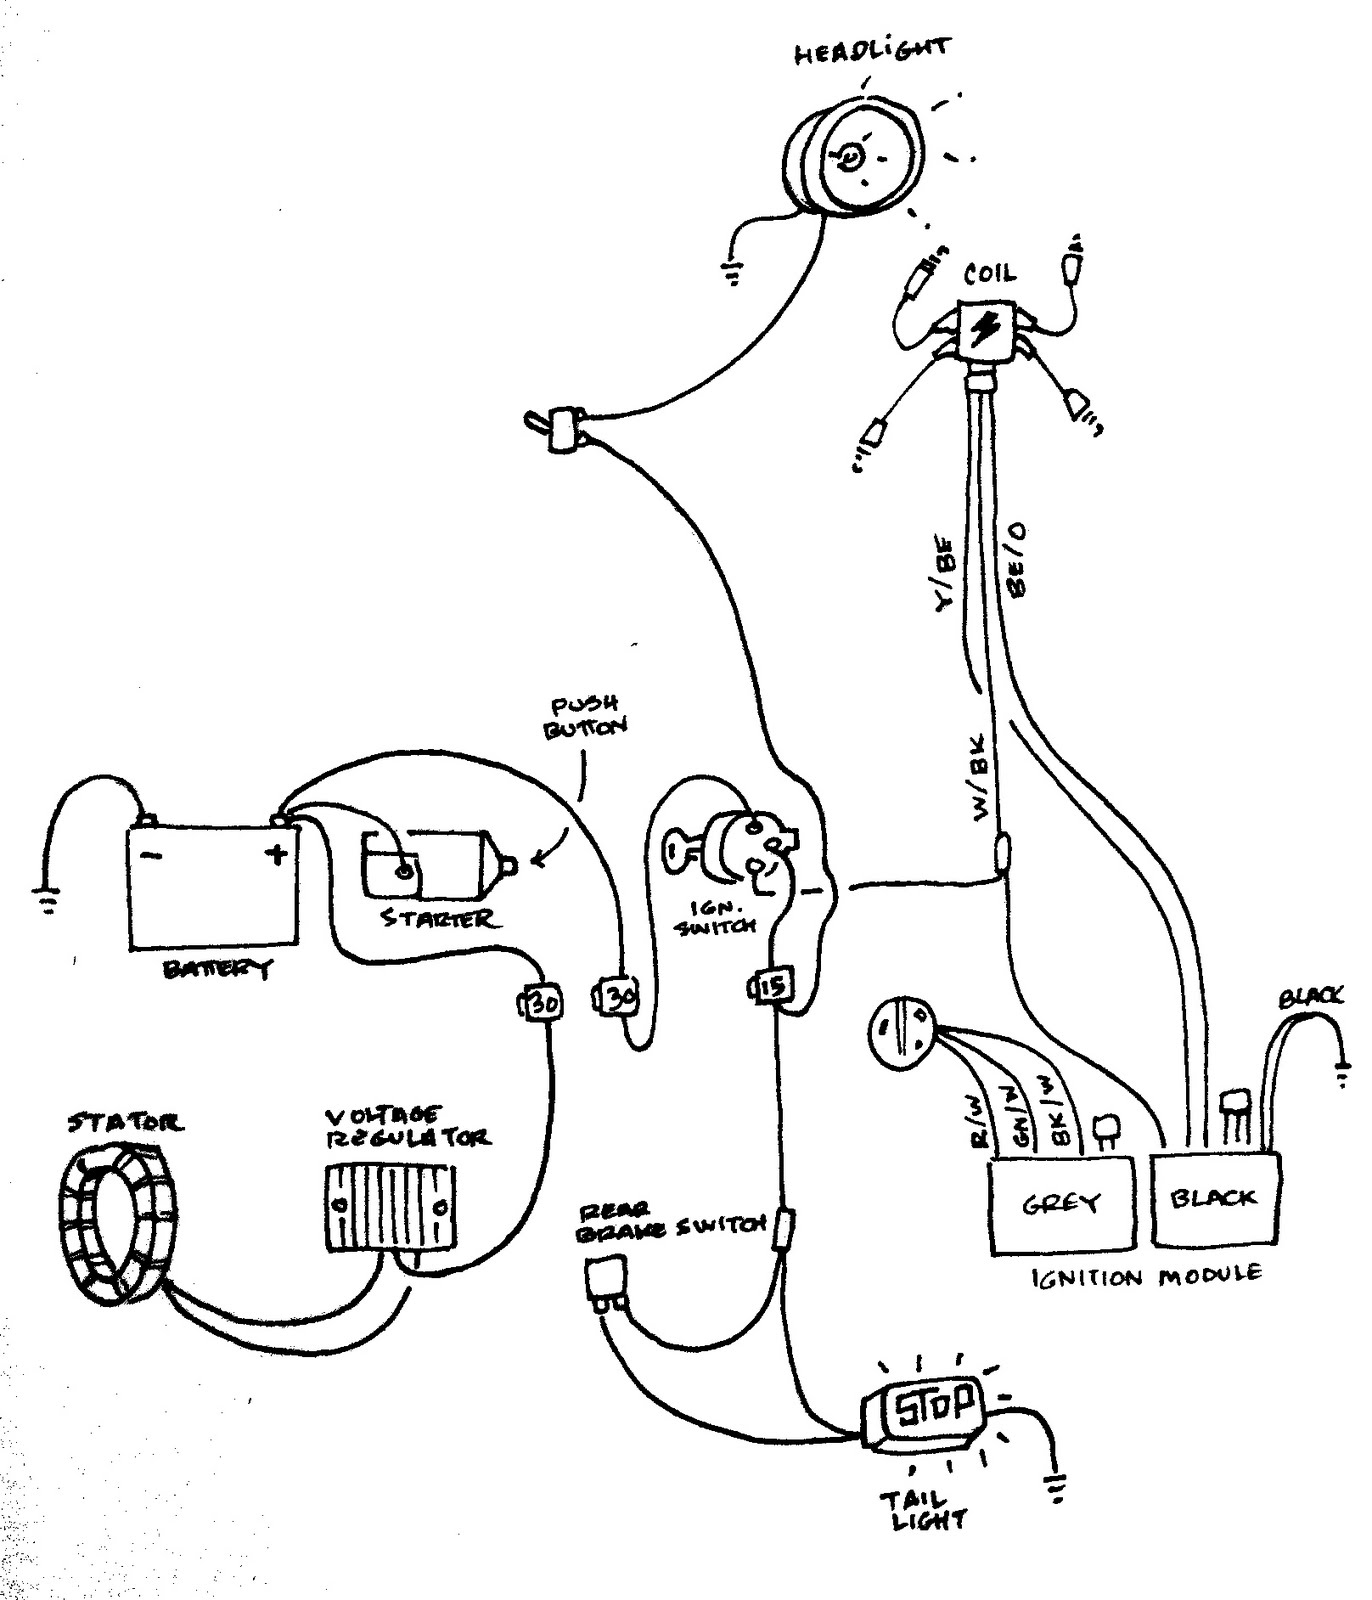 43cc Harley Chopper Wiring Diagram - Wiring Diagram Expert on harley softail wiring diagram, harley chopper front forks, harley sportster wiring diagram for dummies, harley chopper headlight, harley chopper accessories, harley chopper exhaust, harley ignition switch wiring diagram, harley panhead wiring-diagram, harley chopper frame, mini chopper wiring harness, harley power wheels wiring-diagram, harley chopper seat, harley chopper fender,